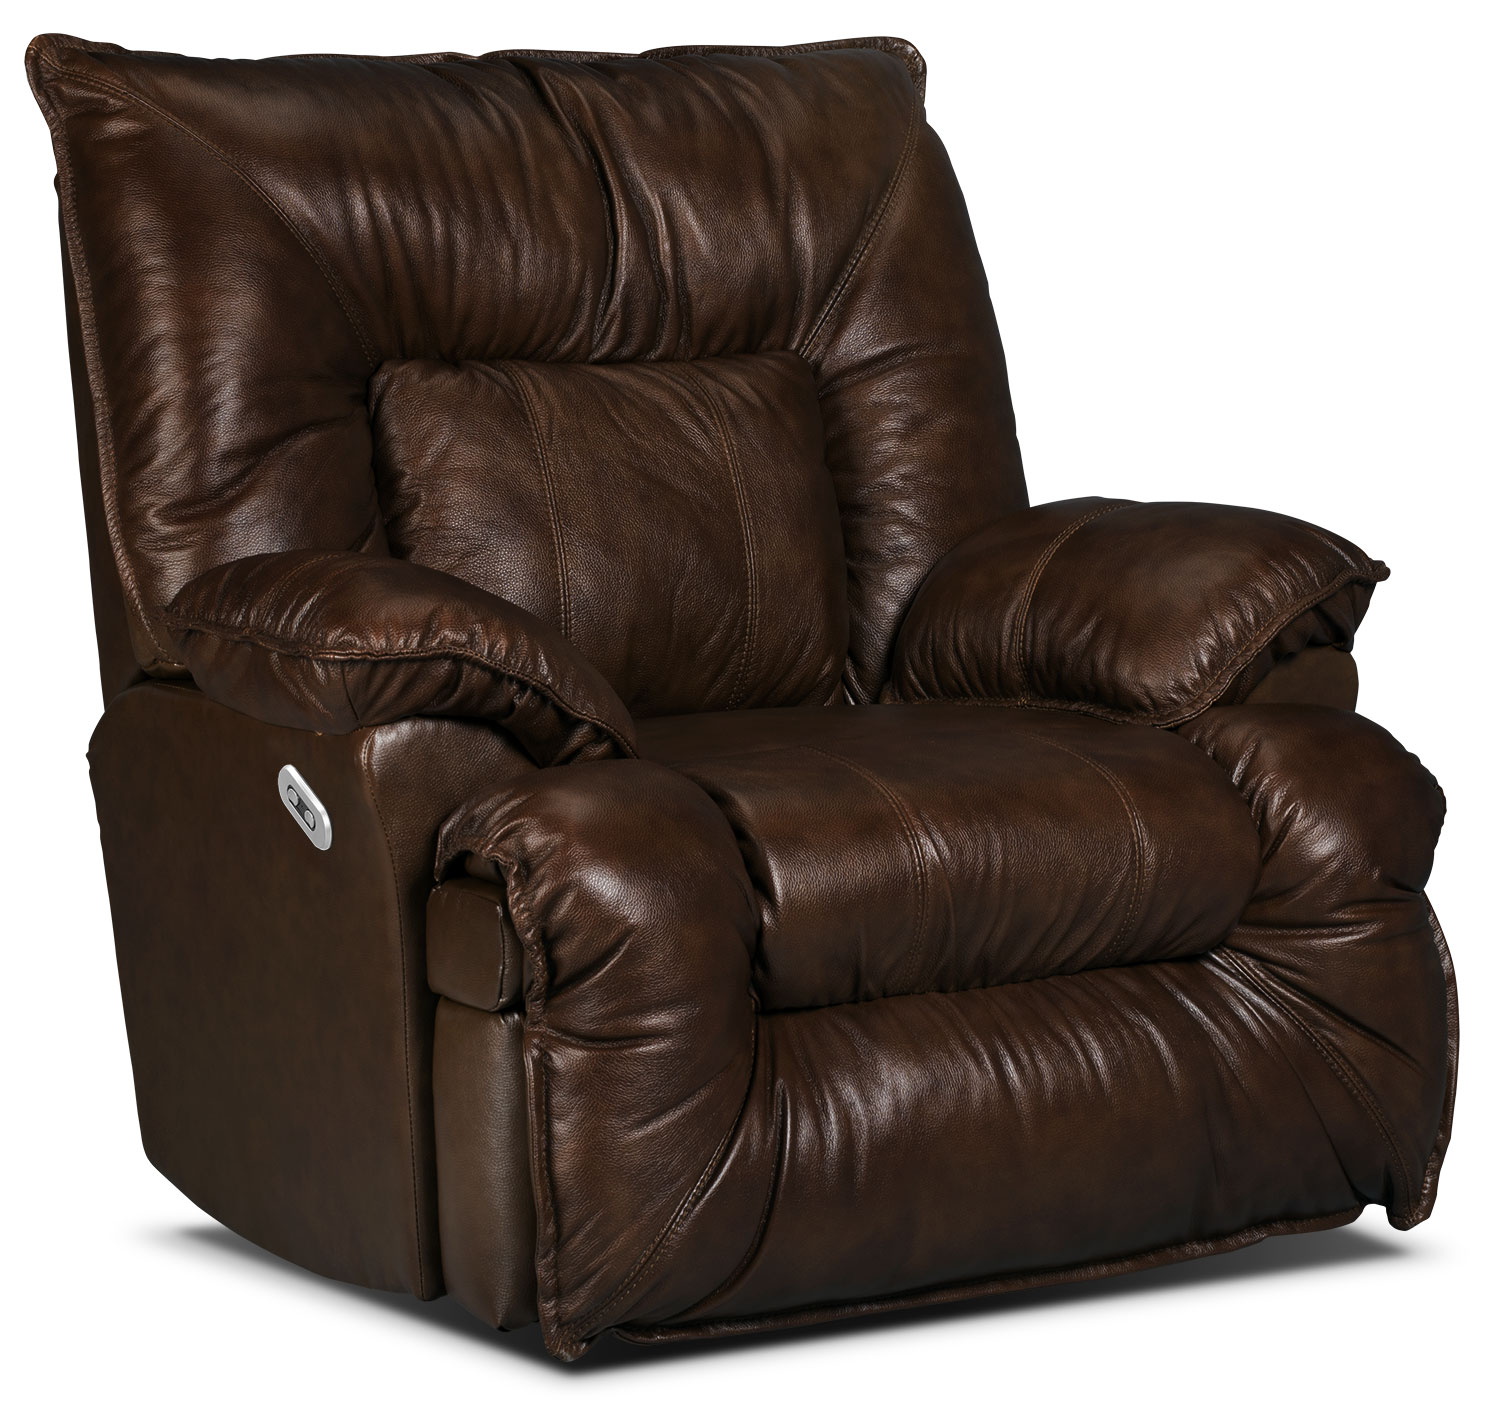 Designed2B Recliner 7726 Genuine Leather Power Lay-Flat Recline Chair - Chocolate